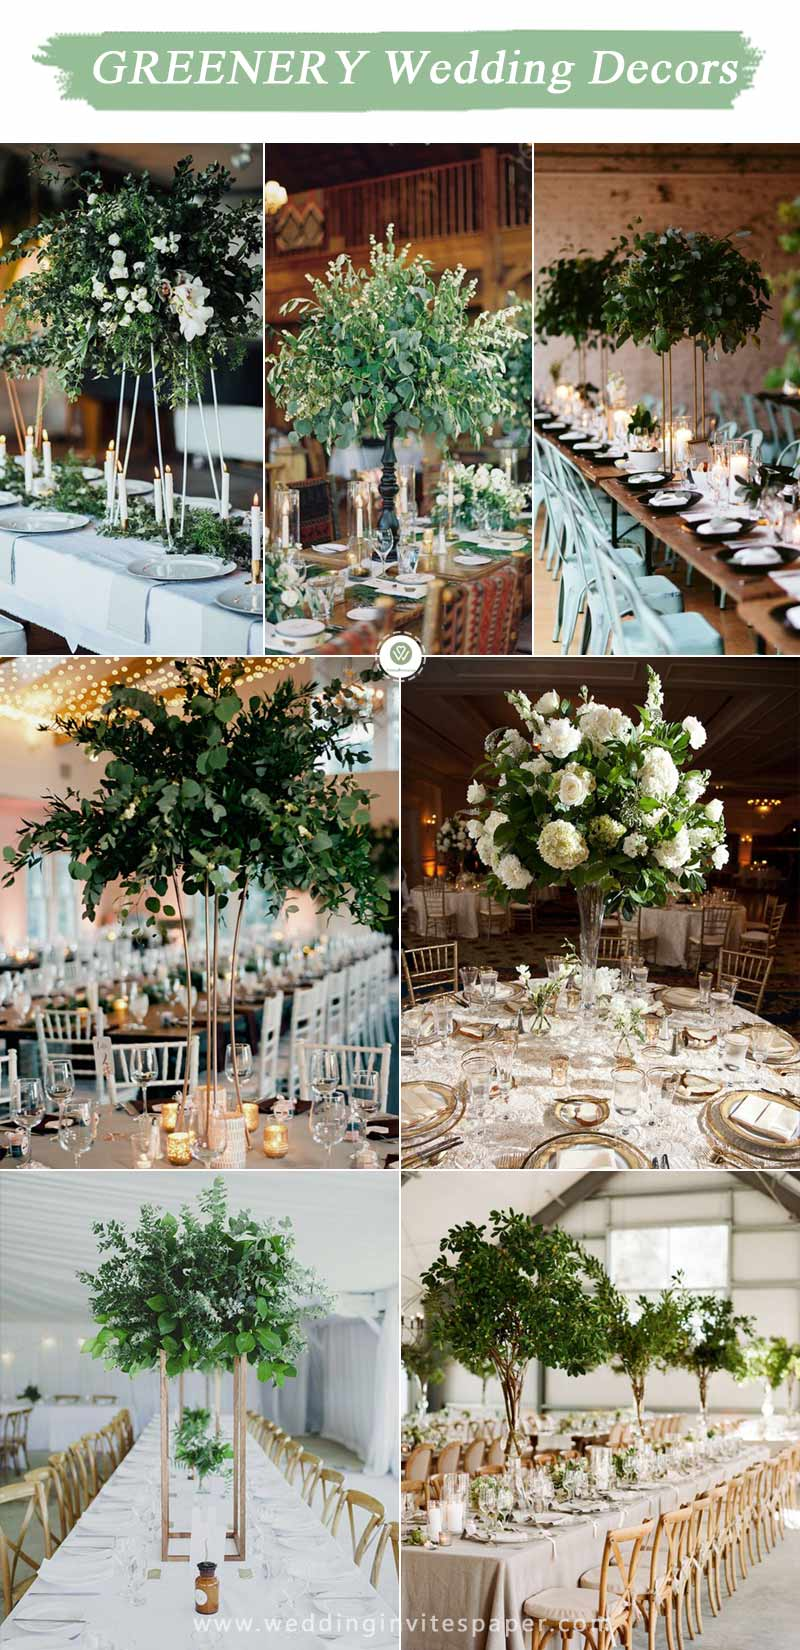 GREENERY-Wedding-Decors.jpg